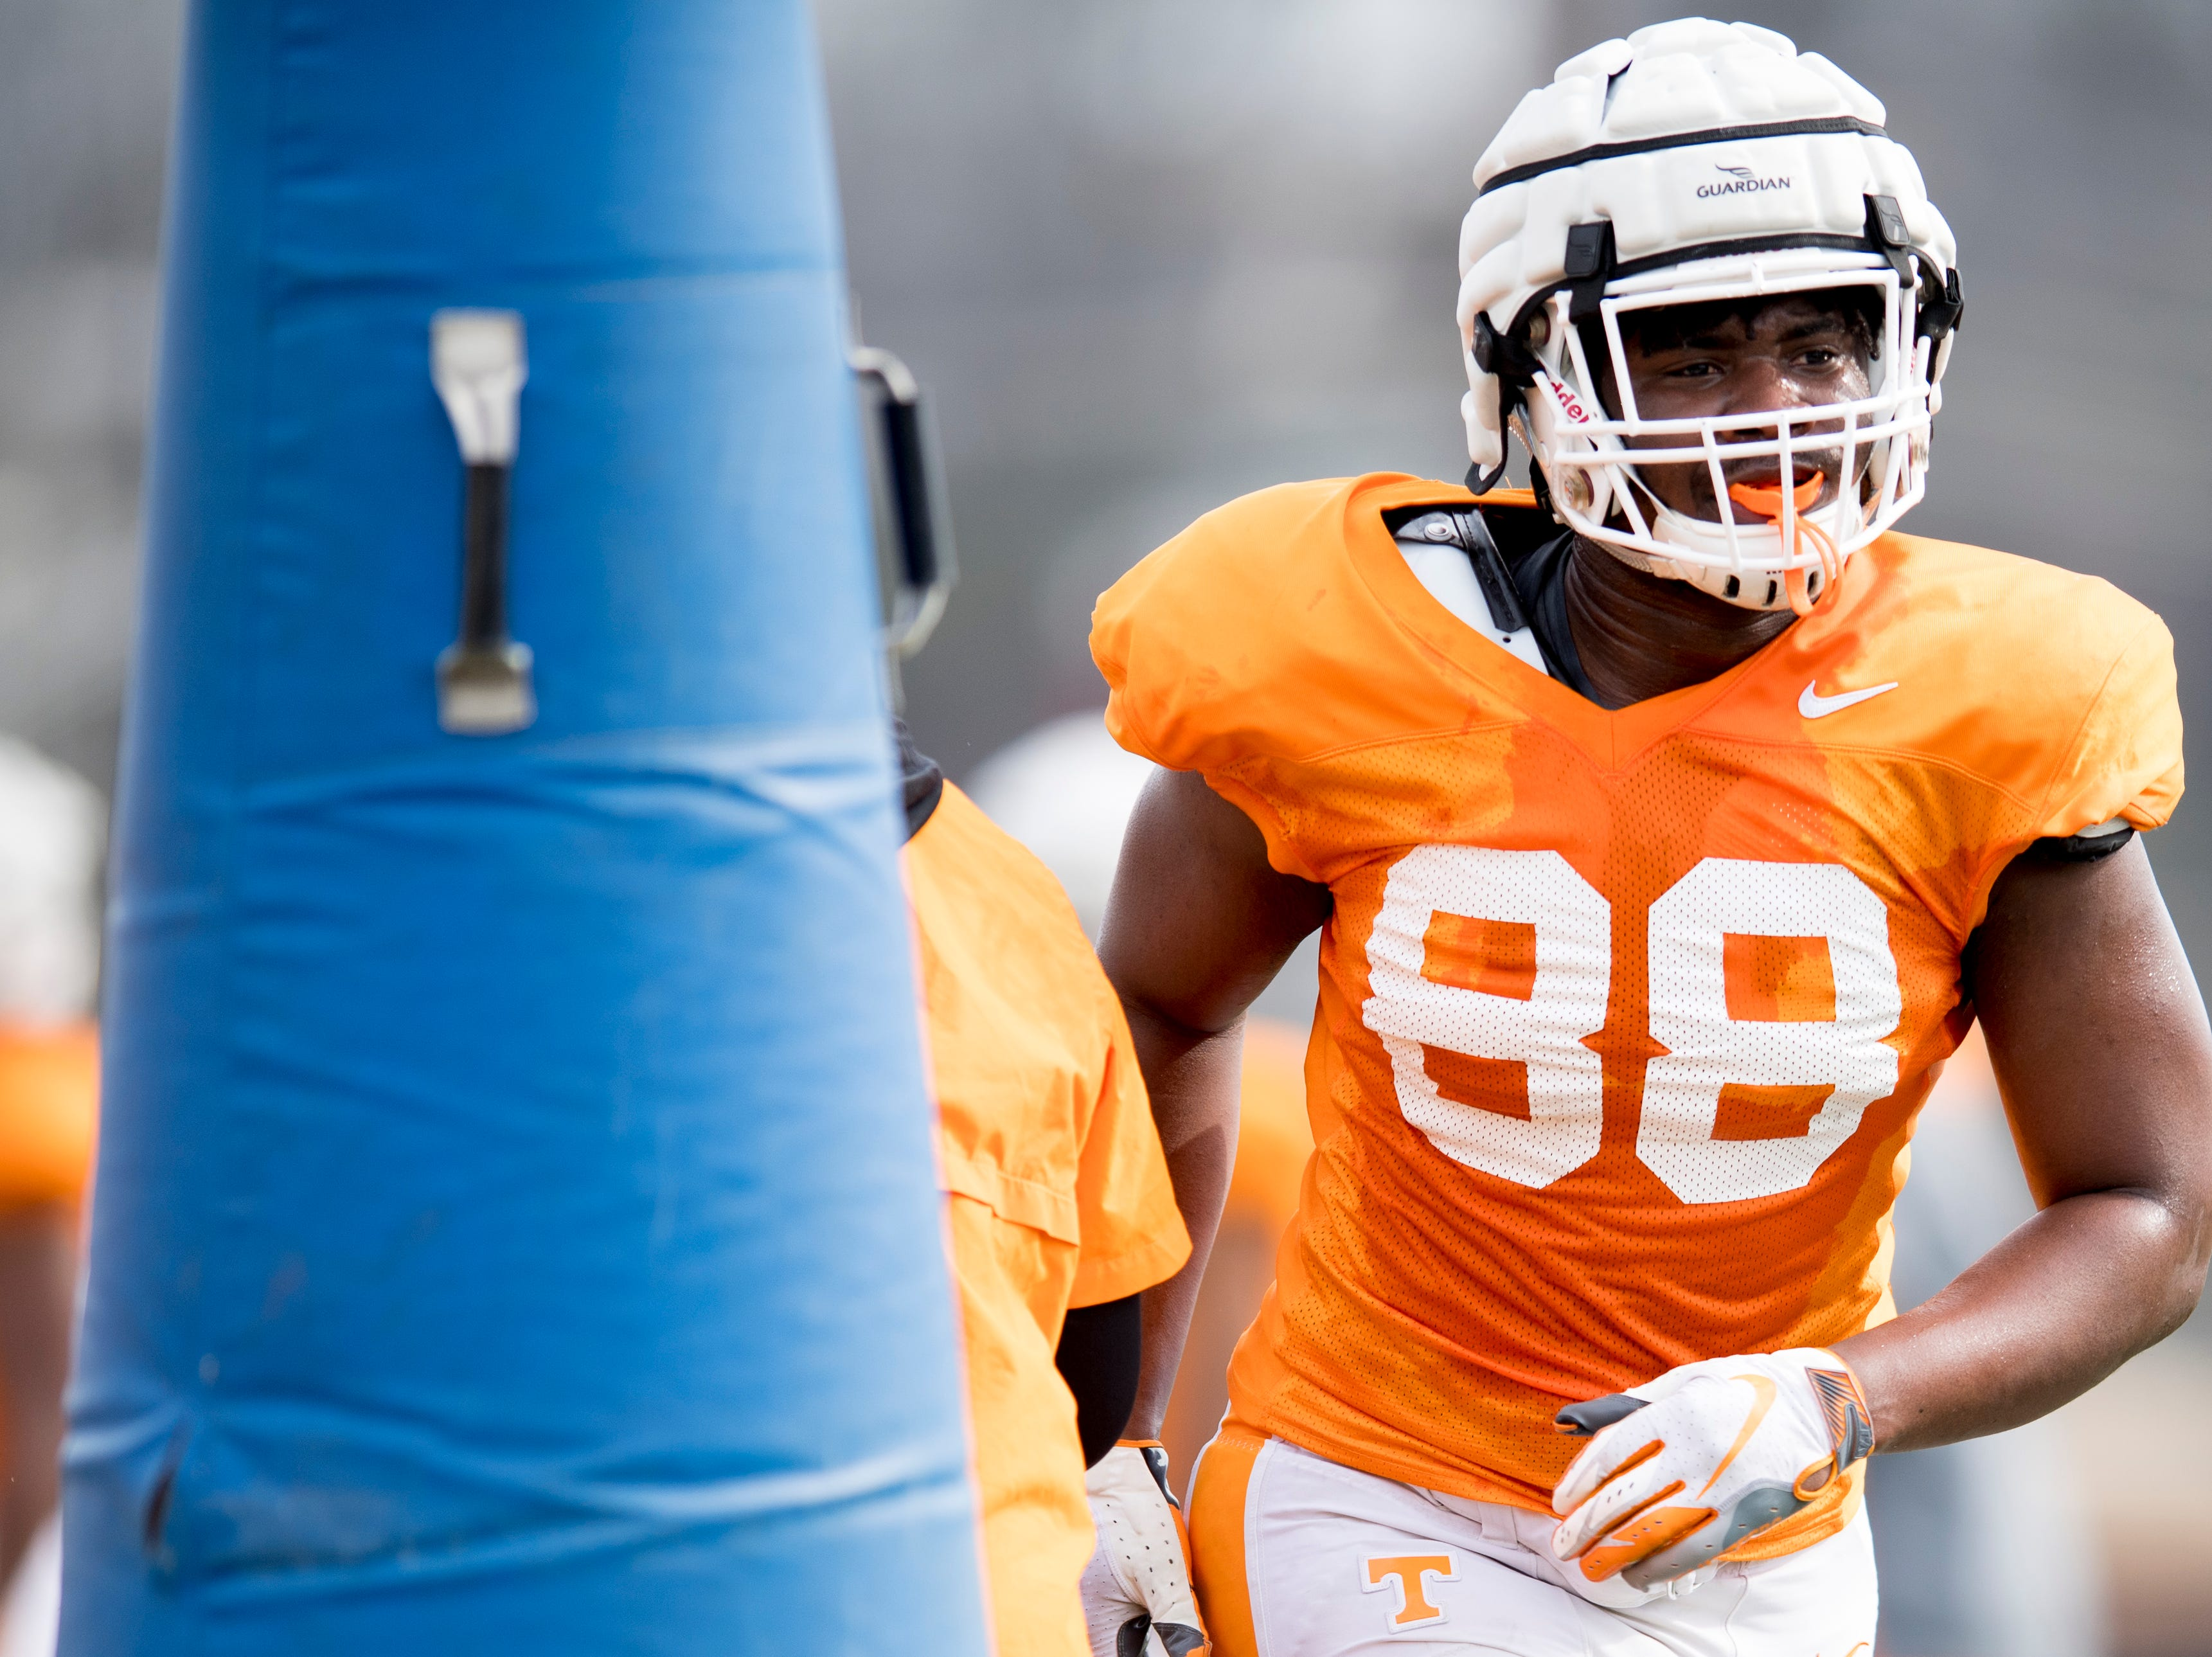 Tennessee defensive lineman LaTrell Dumphus (88) during Tennessee spring football practice at  Haslam Field in Knoxville, Tennessee on Wednesday, March 13, 2019.